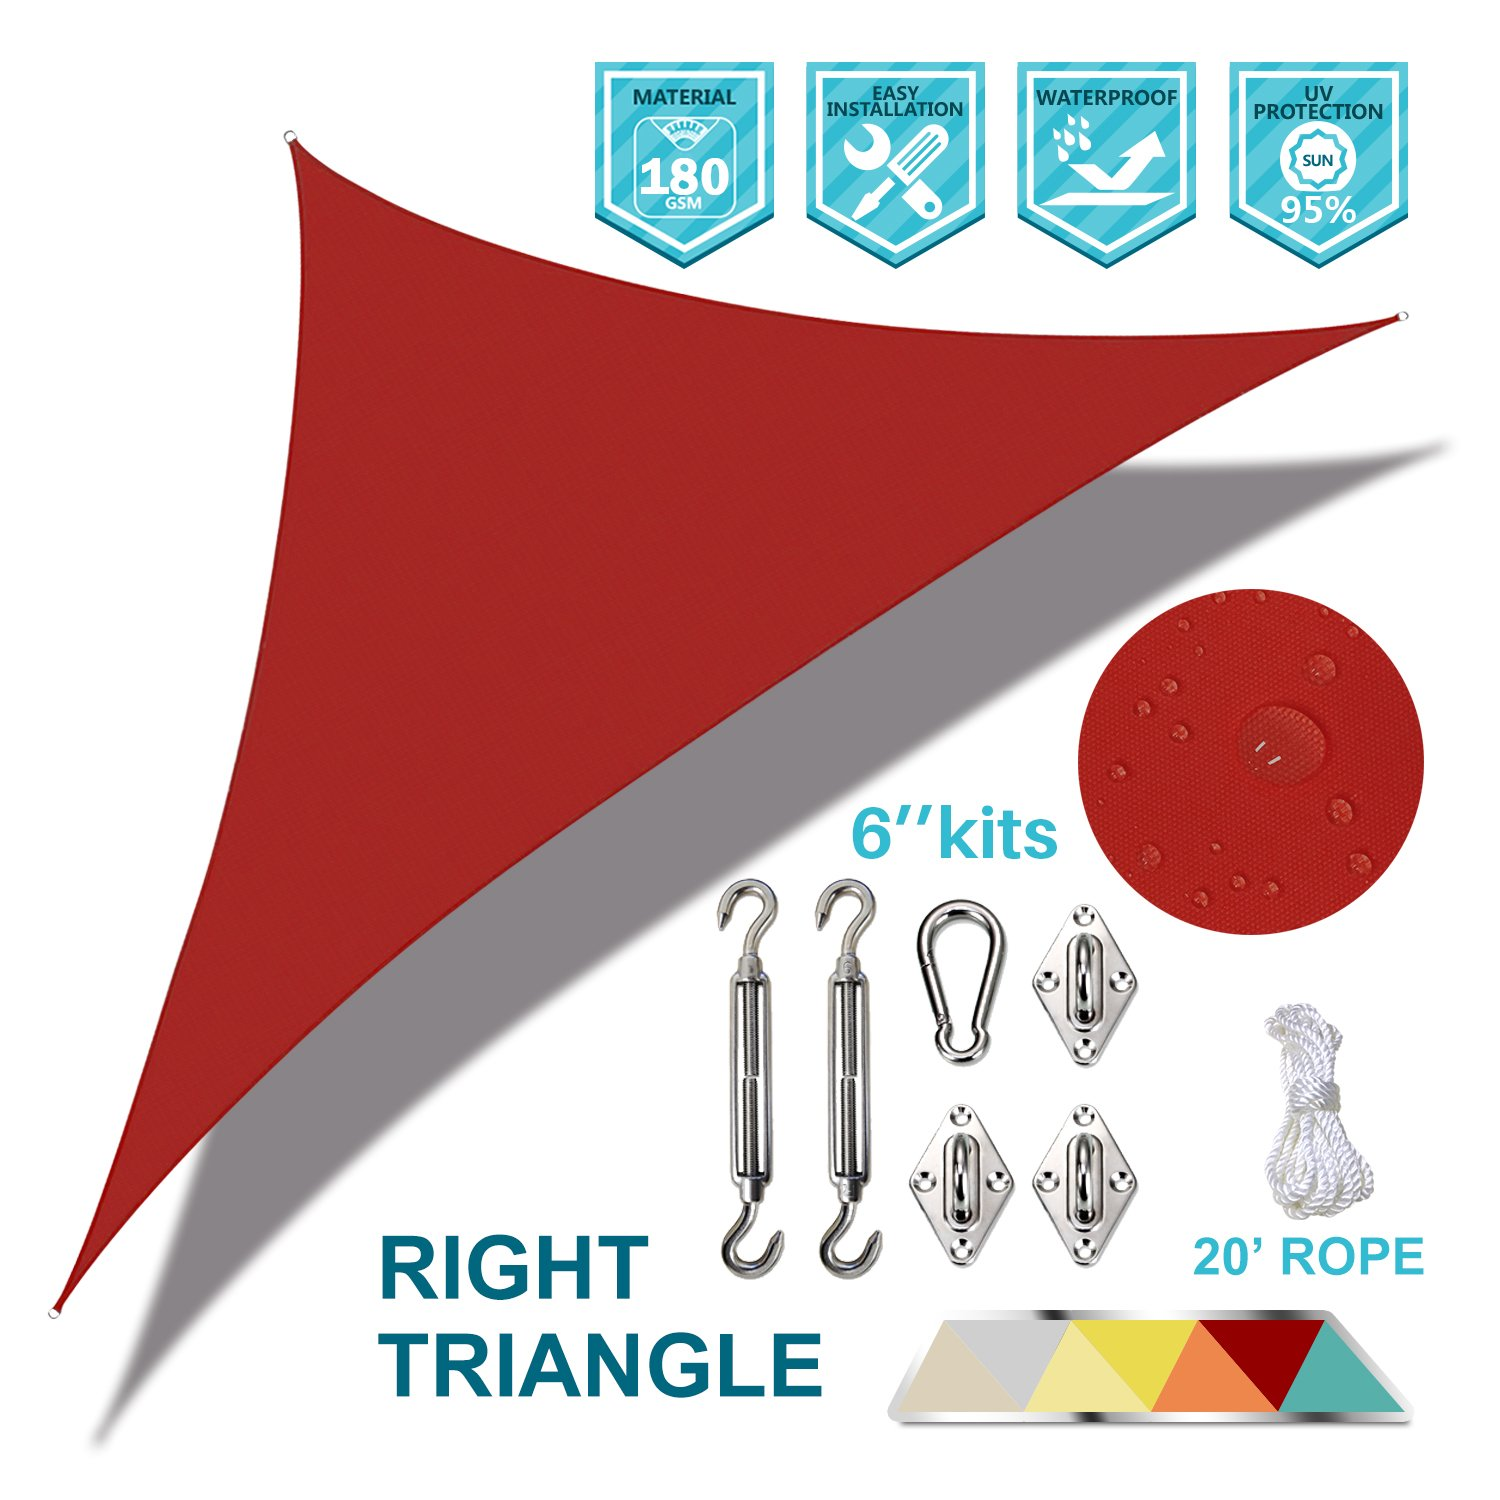 Coarbor Waterproof 12 x15 x19.2 Red Right Triangle Sun Shade Sail Canopy Fabric Shade Cover with Hardware Kit 180 GSM Polyester for Deck Pergola Carport Patio Yard- Customized Size